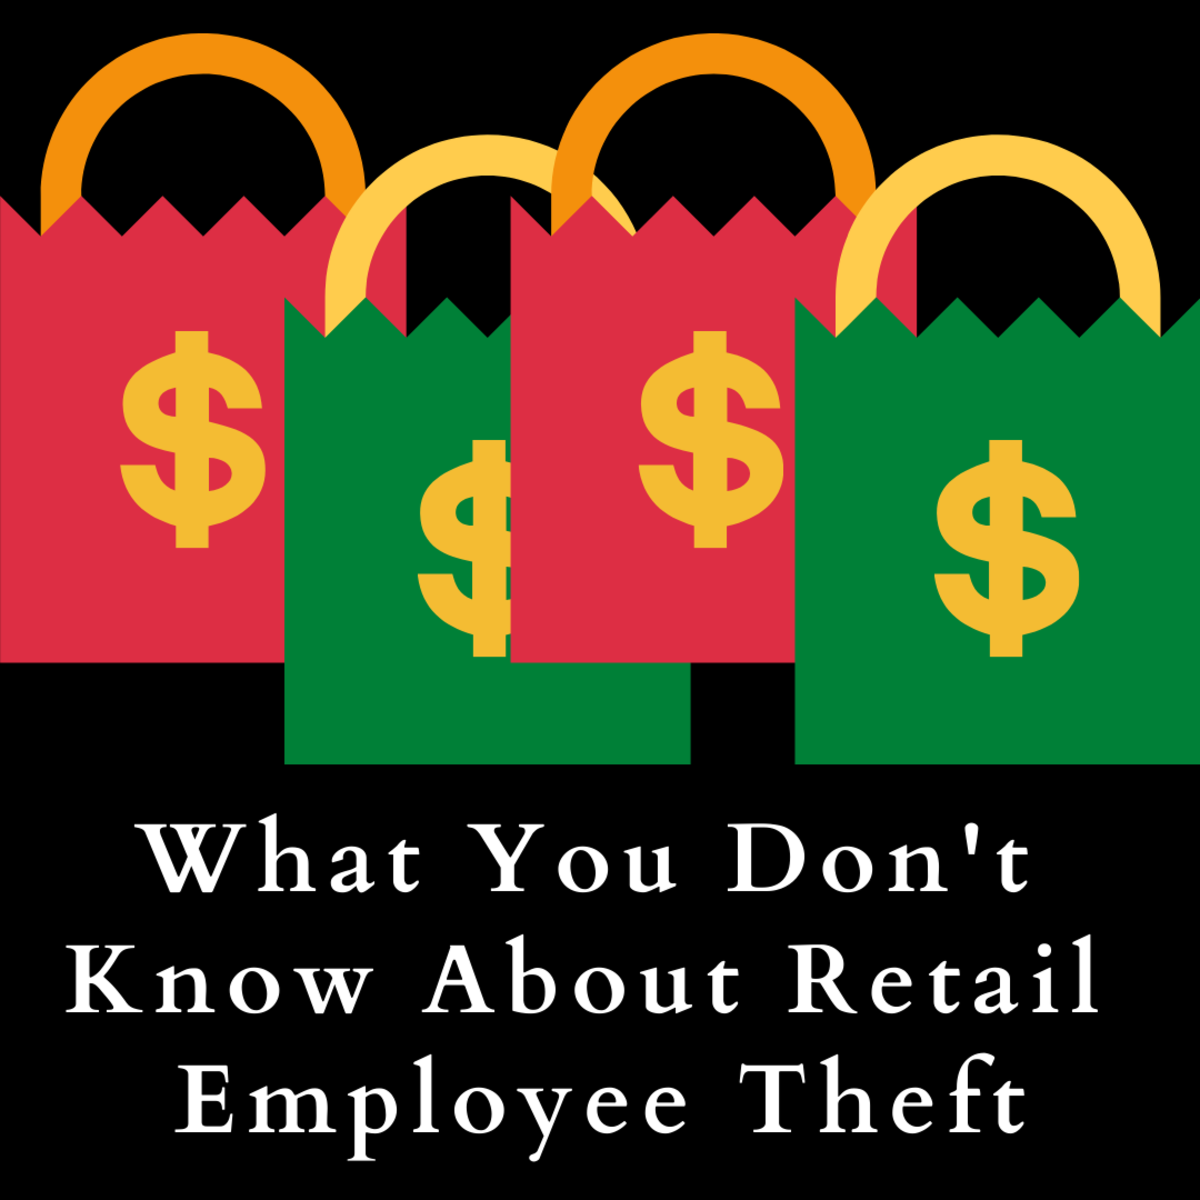 10 Things You Didn't Know About Retail Employee Theft